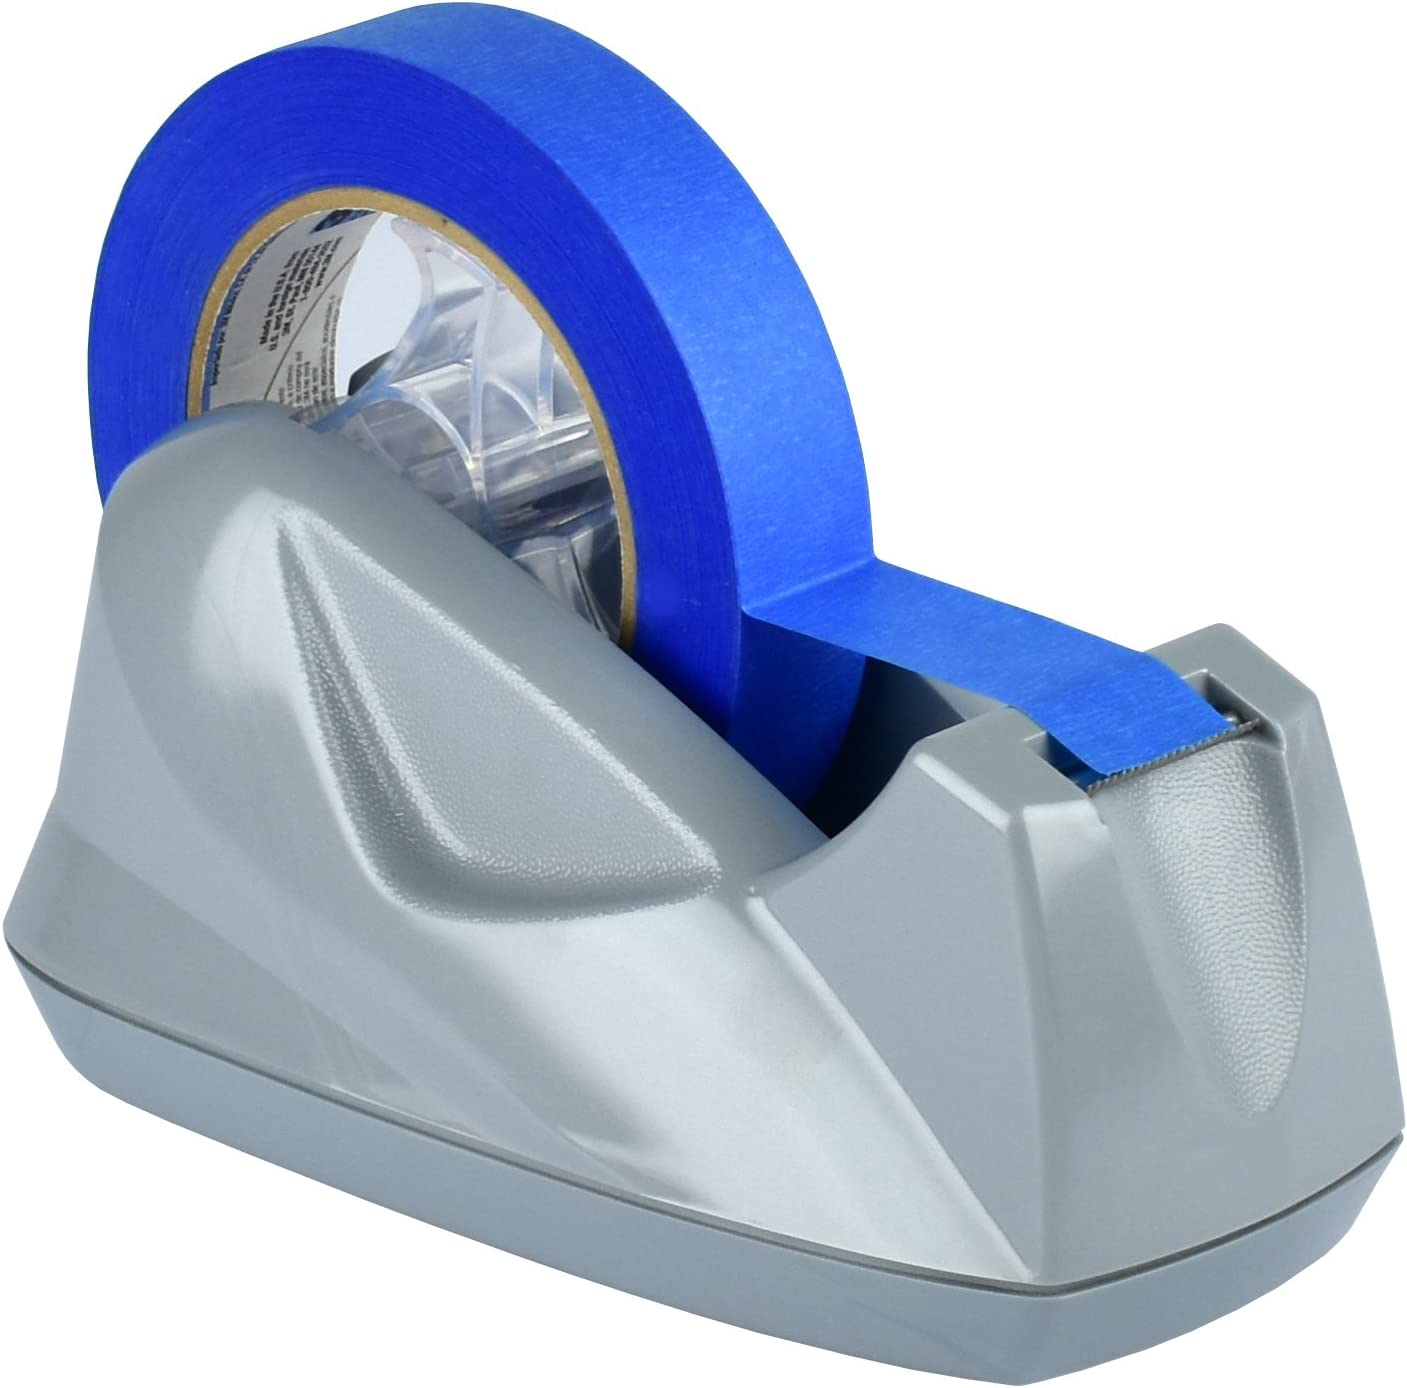 Acrimet Premium Tape Dispenser Jumbo (Platinum Silver Color)